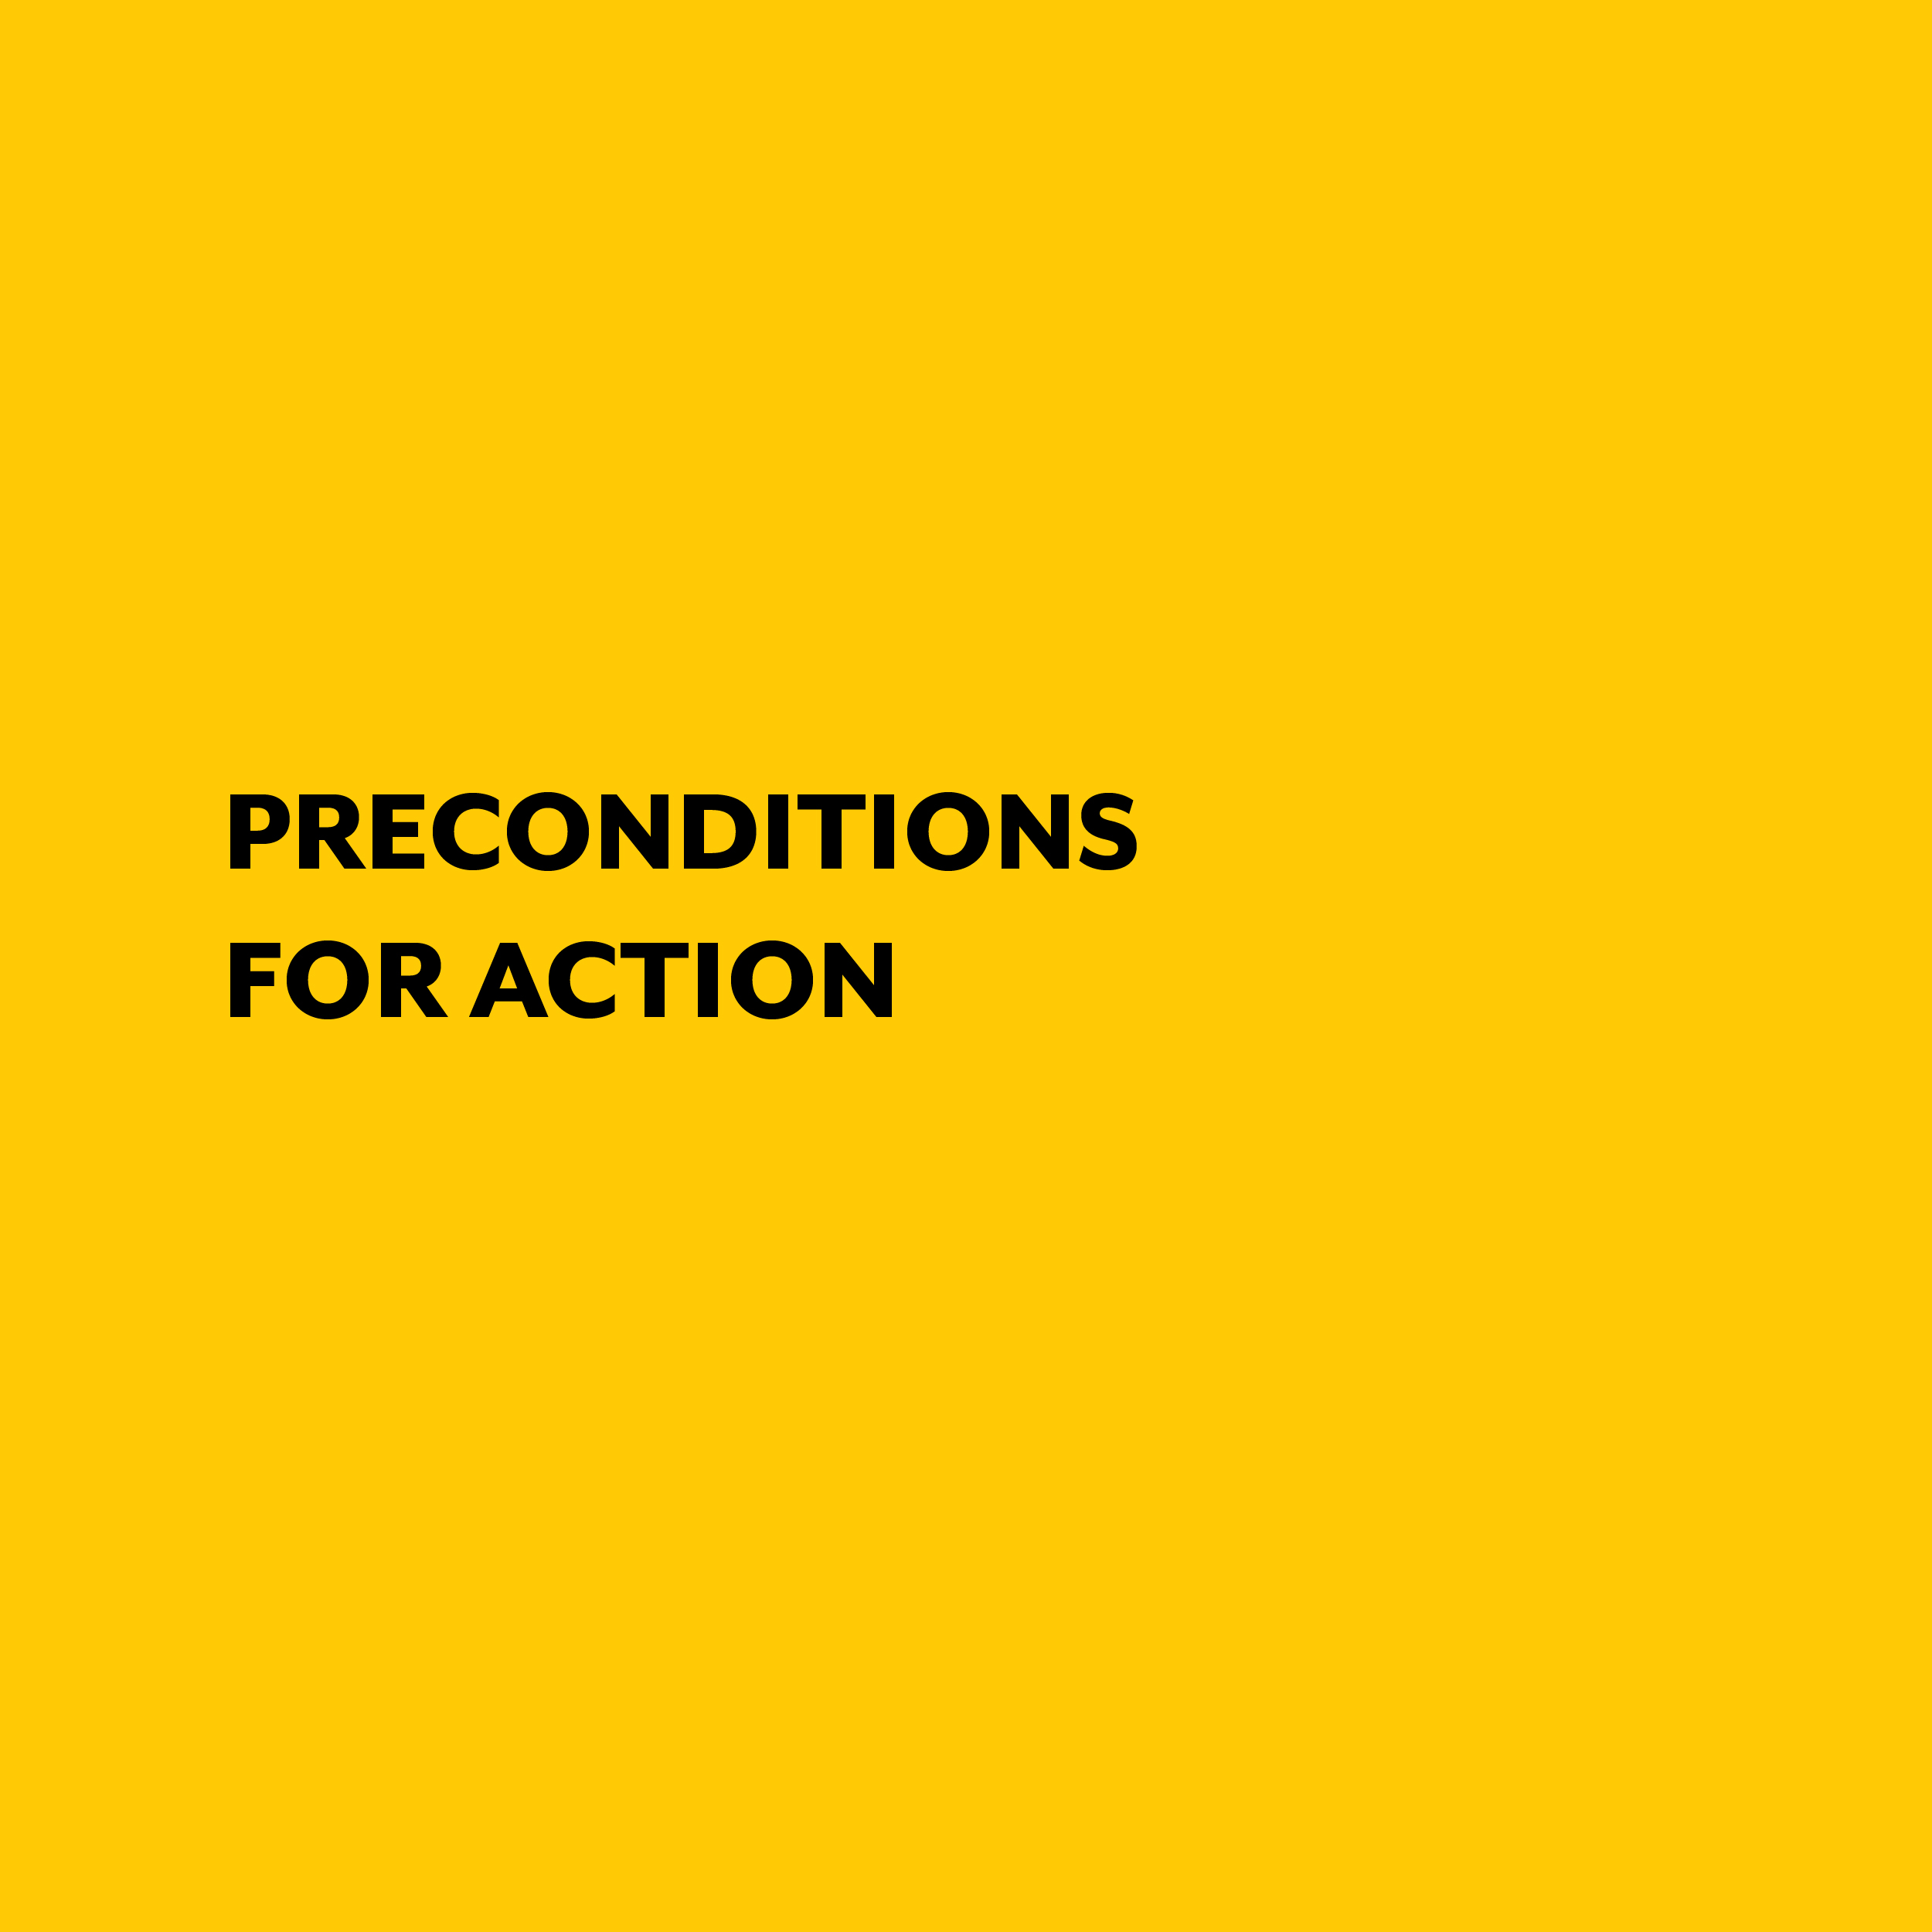 PRECONDITIONS FOR ACTION.jpg